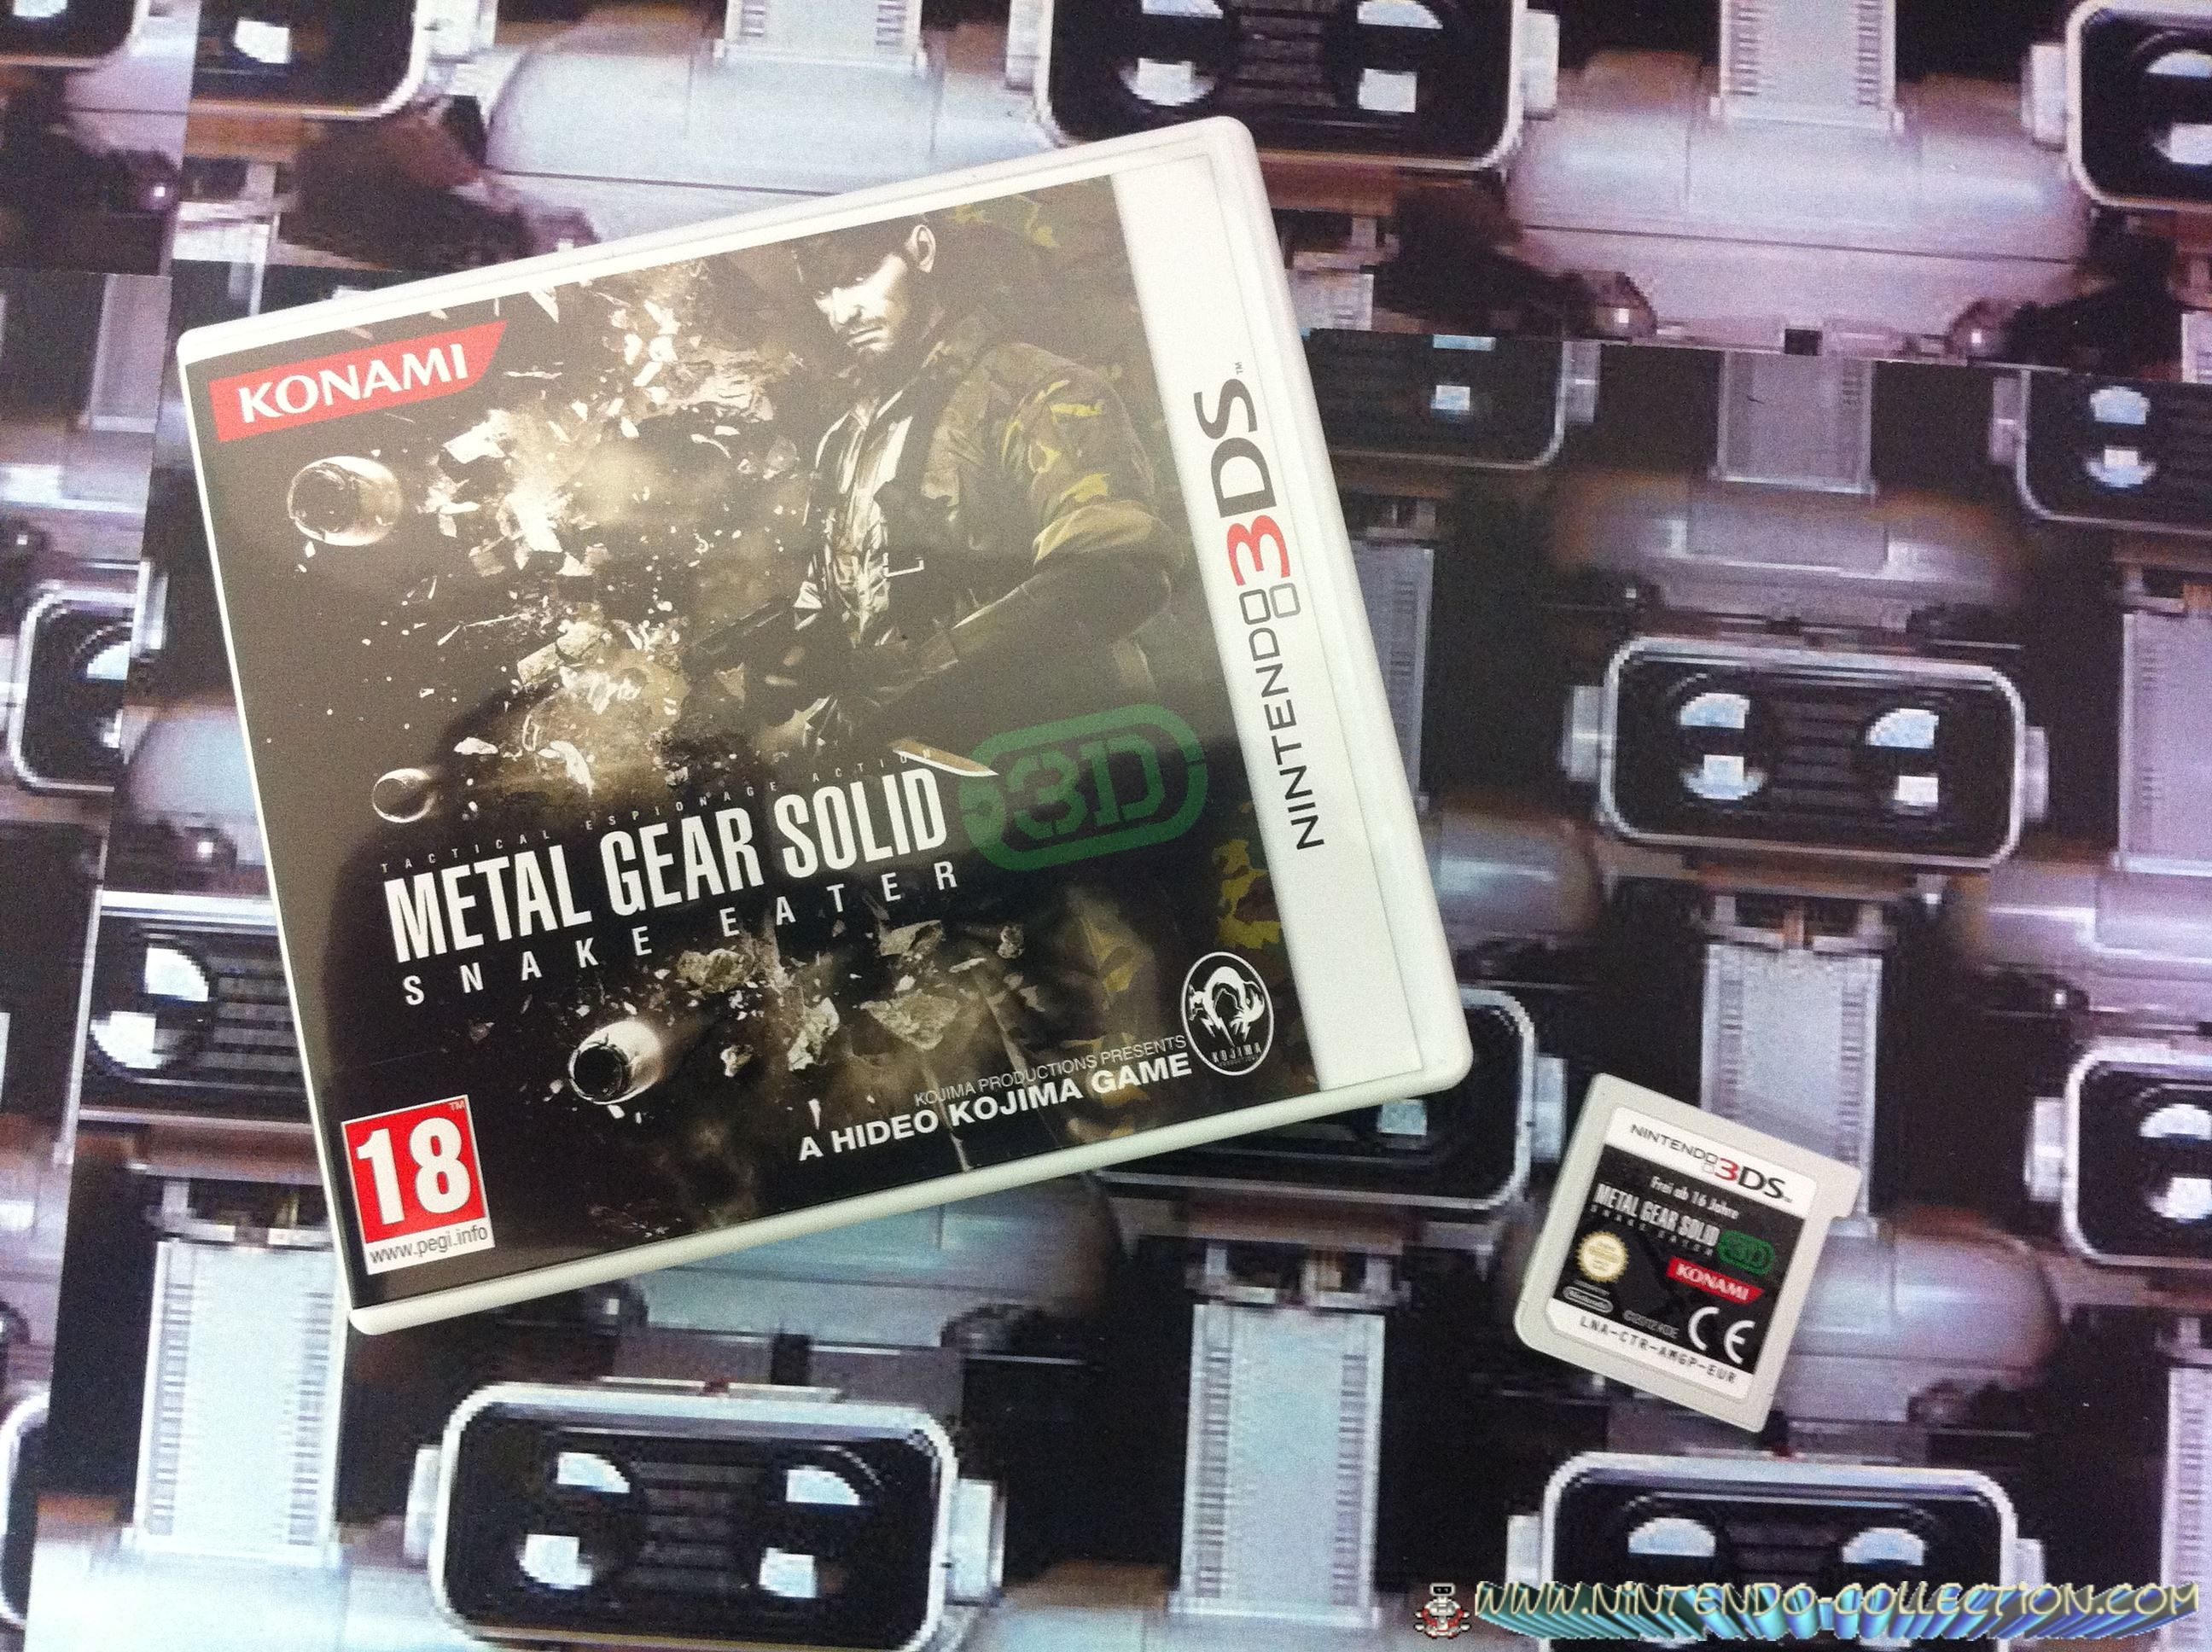 www.nintendo-collection.com - Metal Gear Solid - Snake Eater 3D 3DS